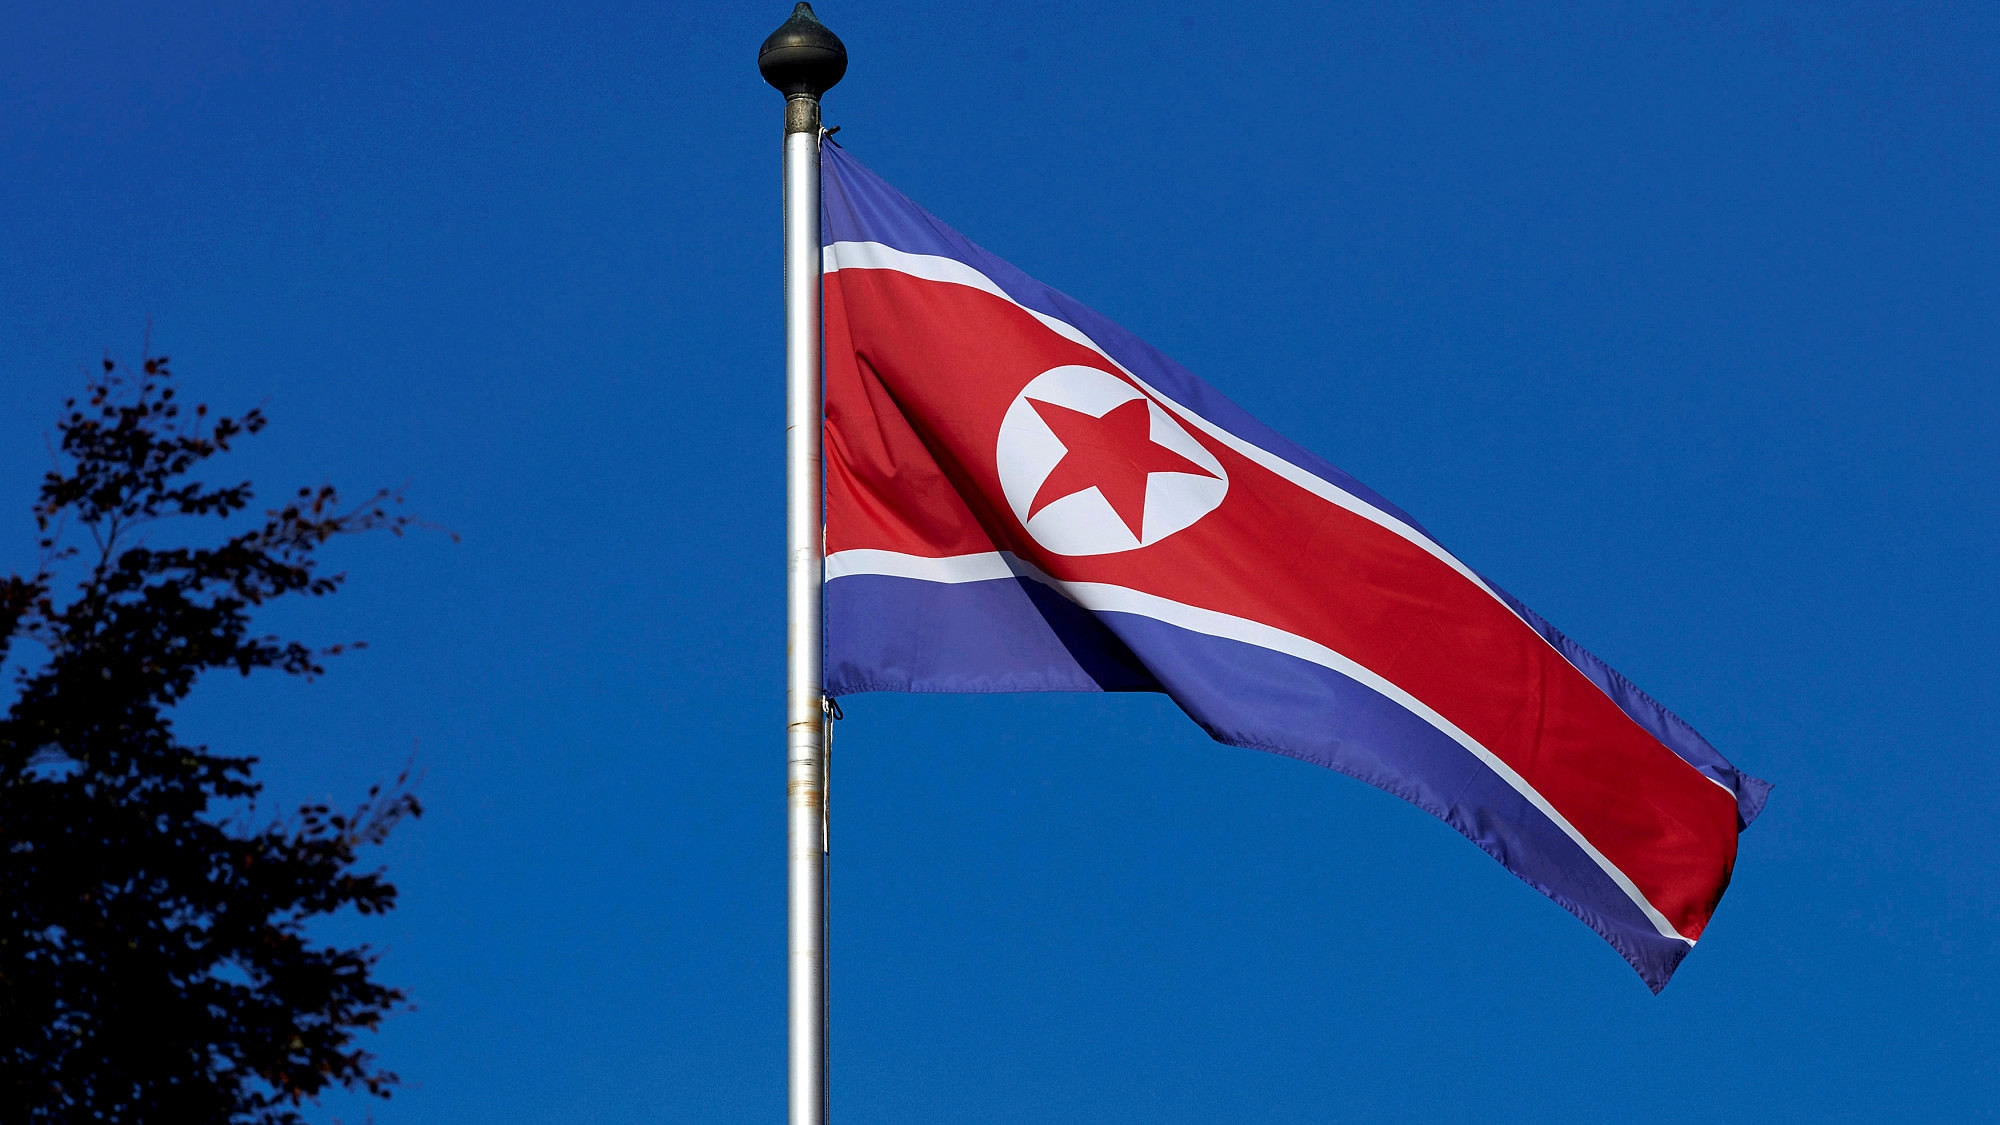 DPRK leader Kim Jong-un confirms his readiness to visit Russia: Russian media